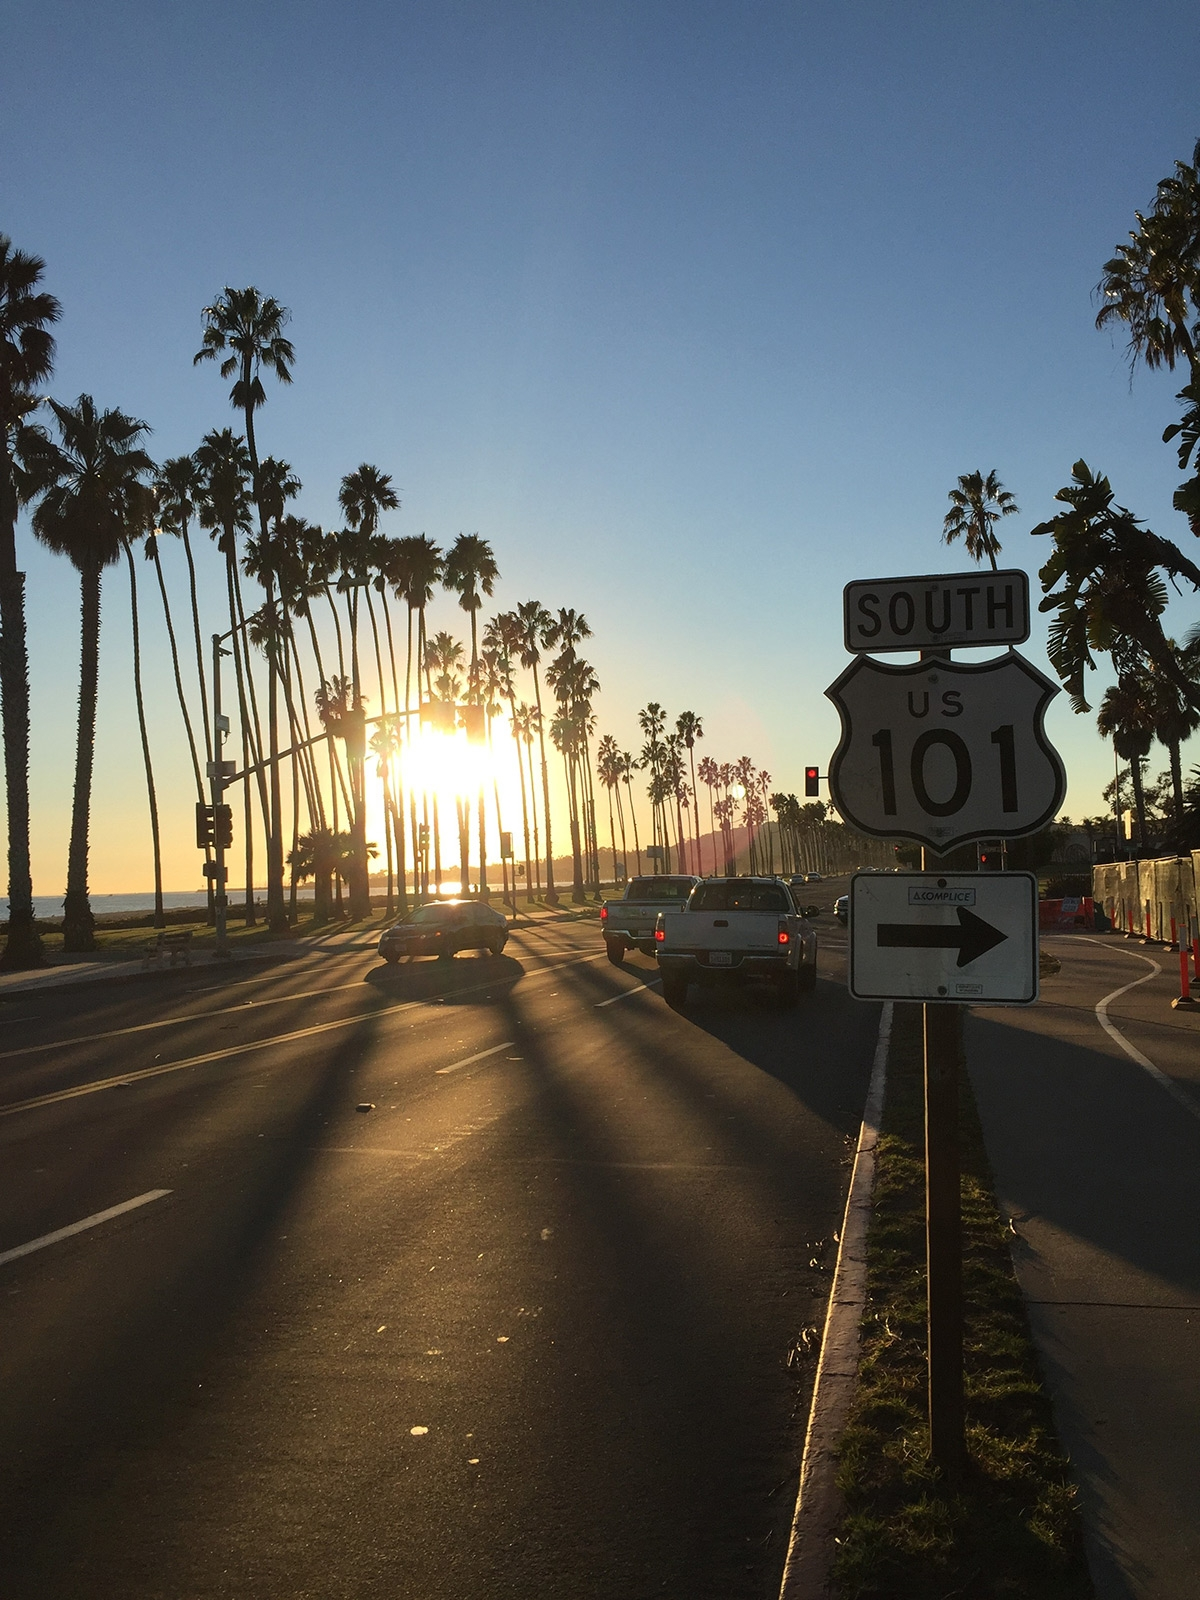 The seaside road at Santa Barbara contains traffic, tall palms and a sign for Route 101